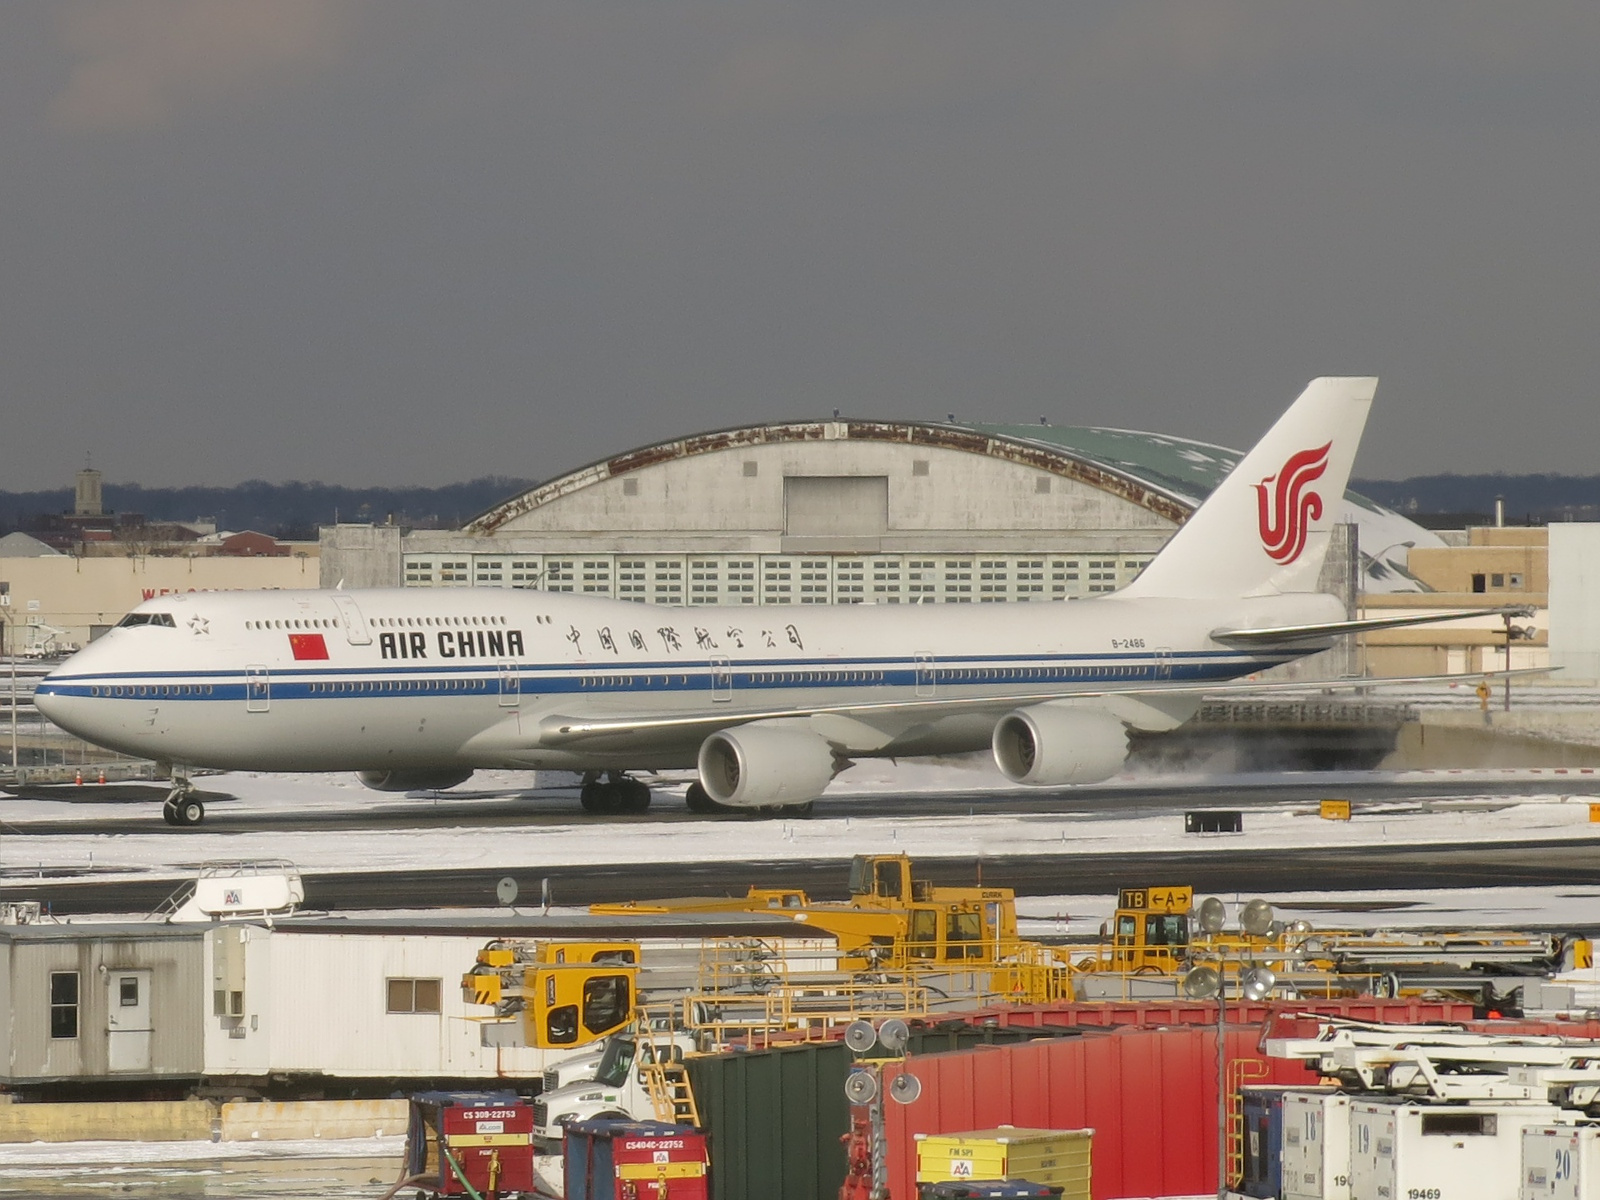 File:Air China Boeing 747-89L Intercontinental B-2486.jpg